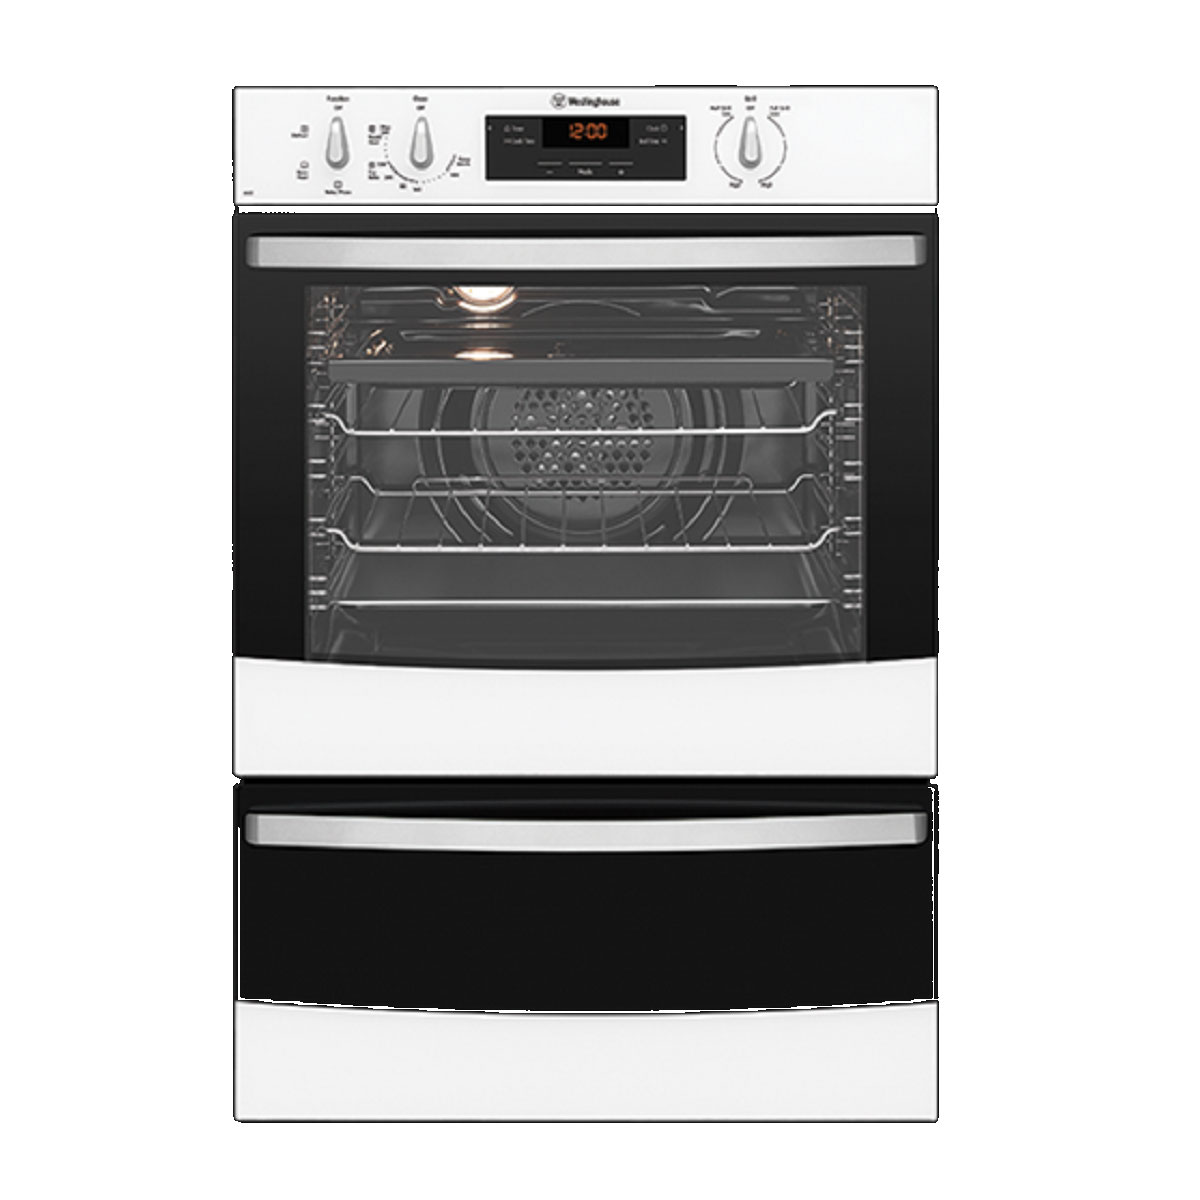 Westinghouse WVE665W Built-In Oven